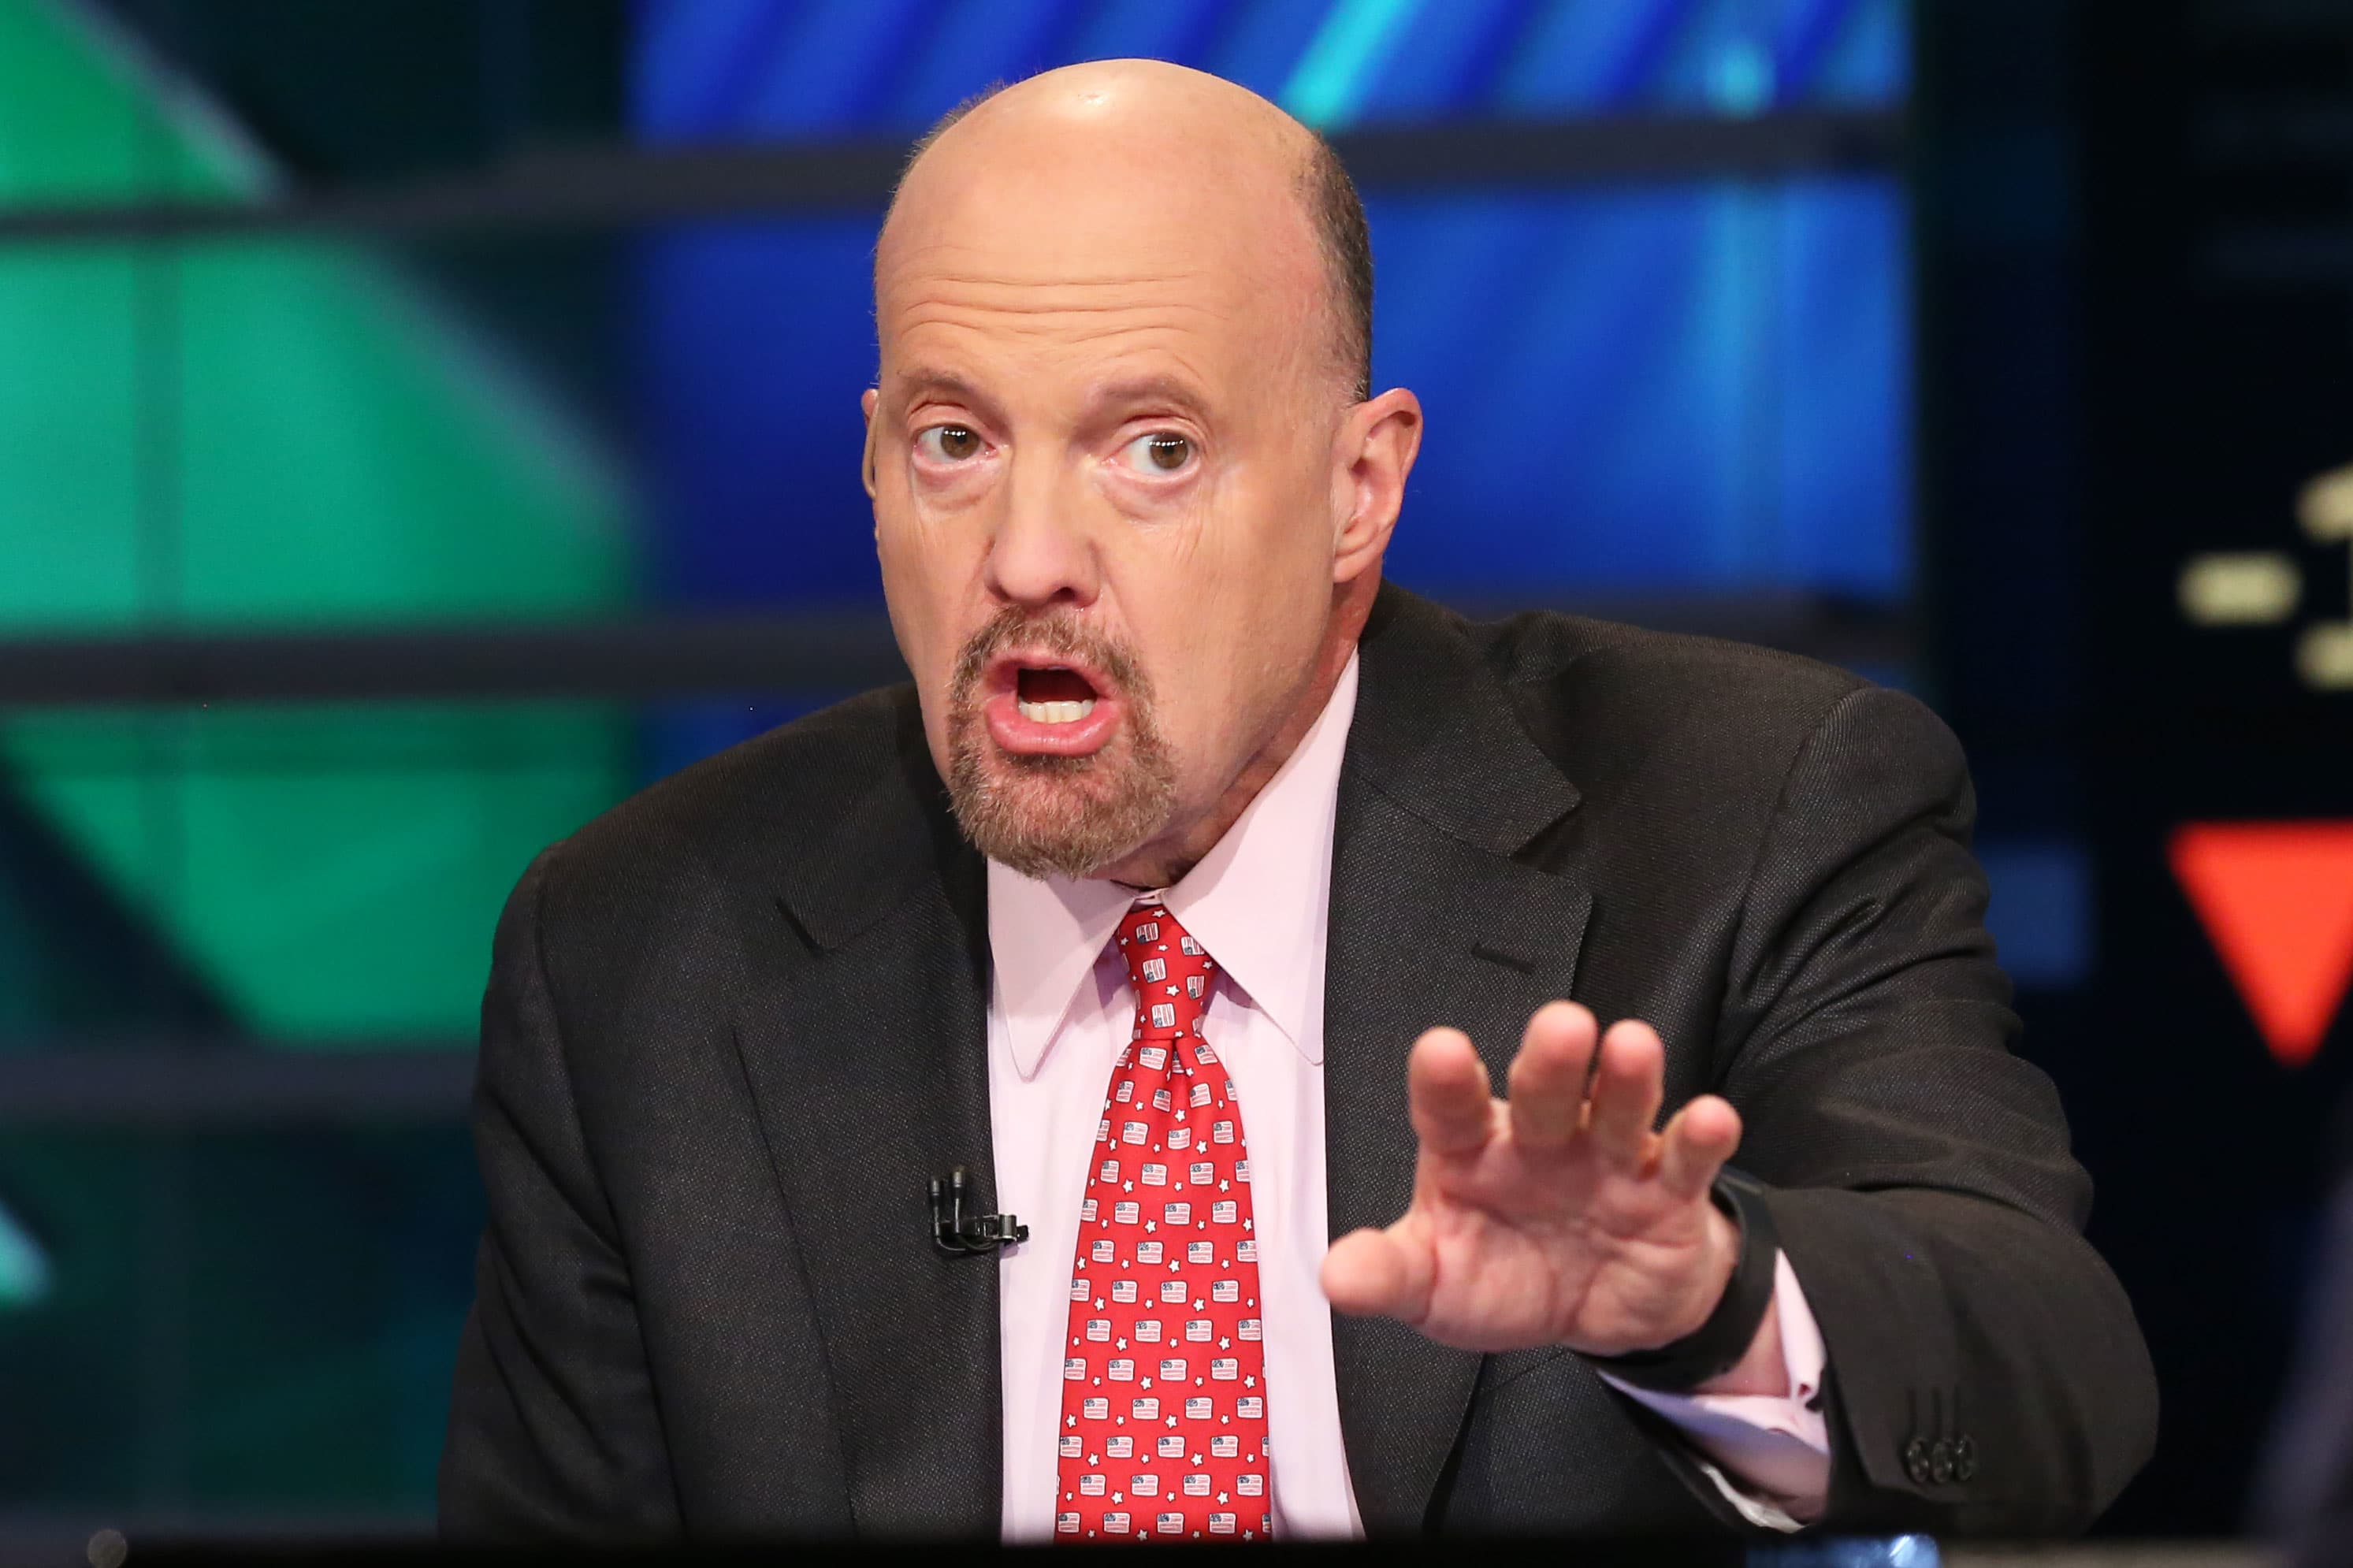 Cramer on recent IPO stumbles: 'These brokers need the money so bad, it's like there's no shame'